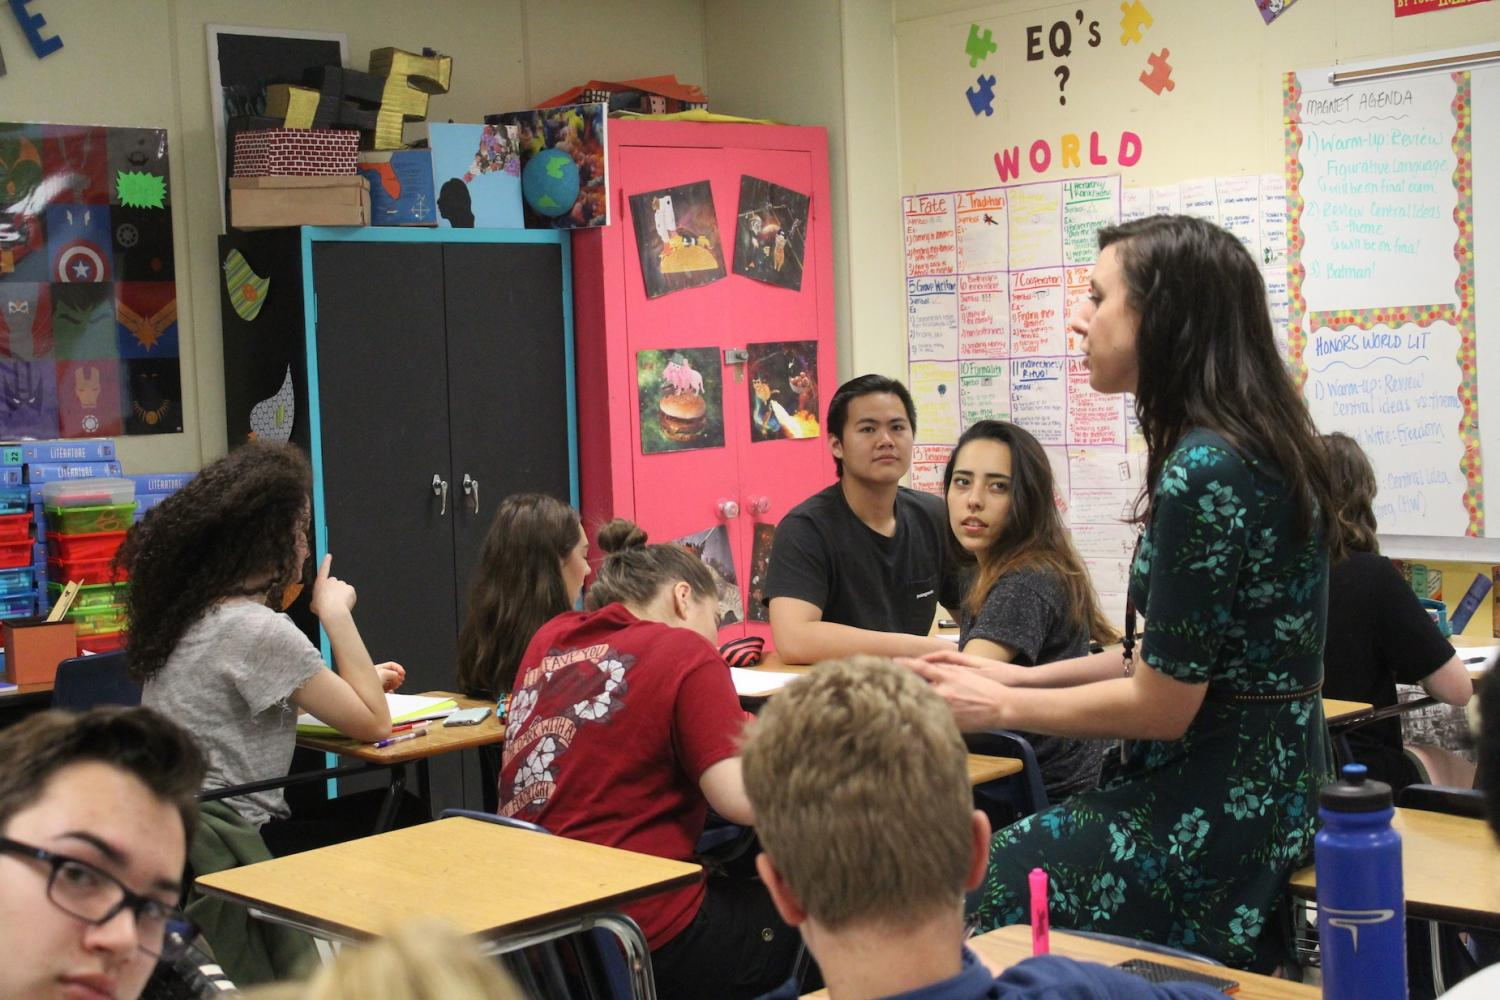 Literature teacher Jenna Essenburg engages herself in connecting with the students, enhancing the student-teacher relationship that has a long term effect on academic performance. An enthusiastic teacher influences the attitudes of students resulting in more passion and determination towards the curriculum.